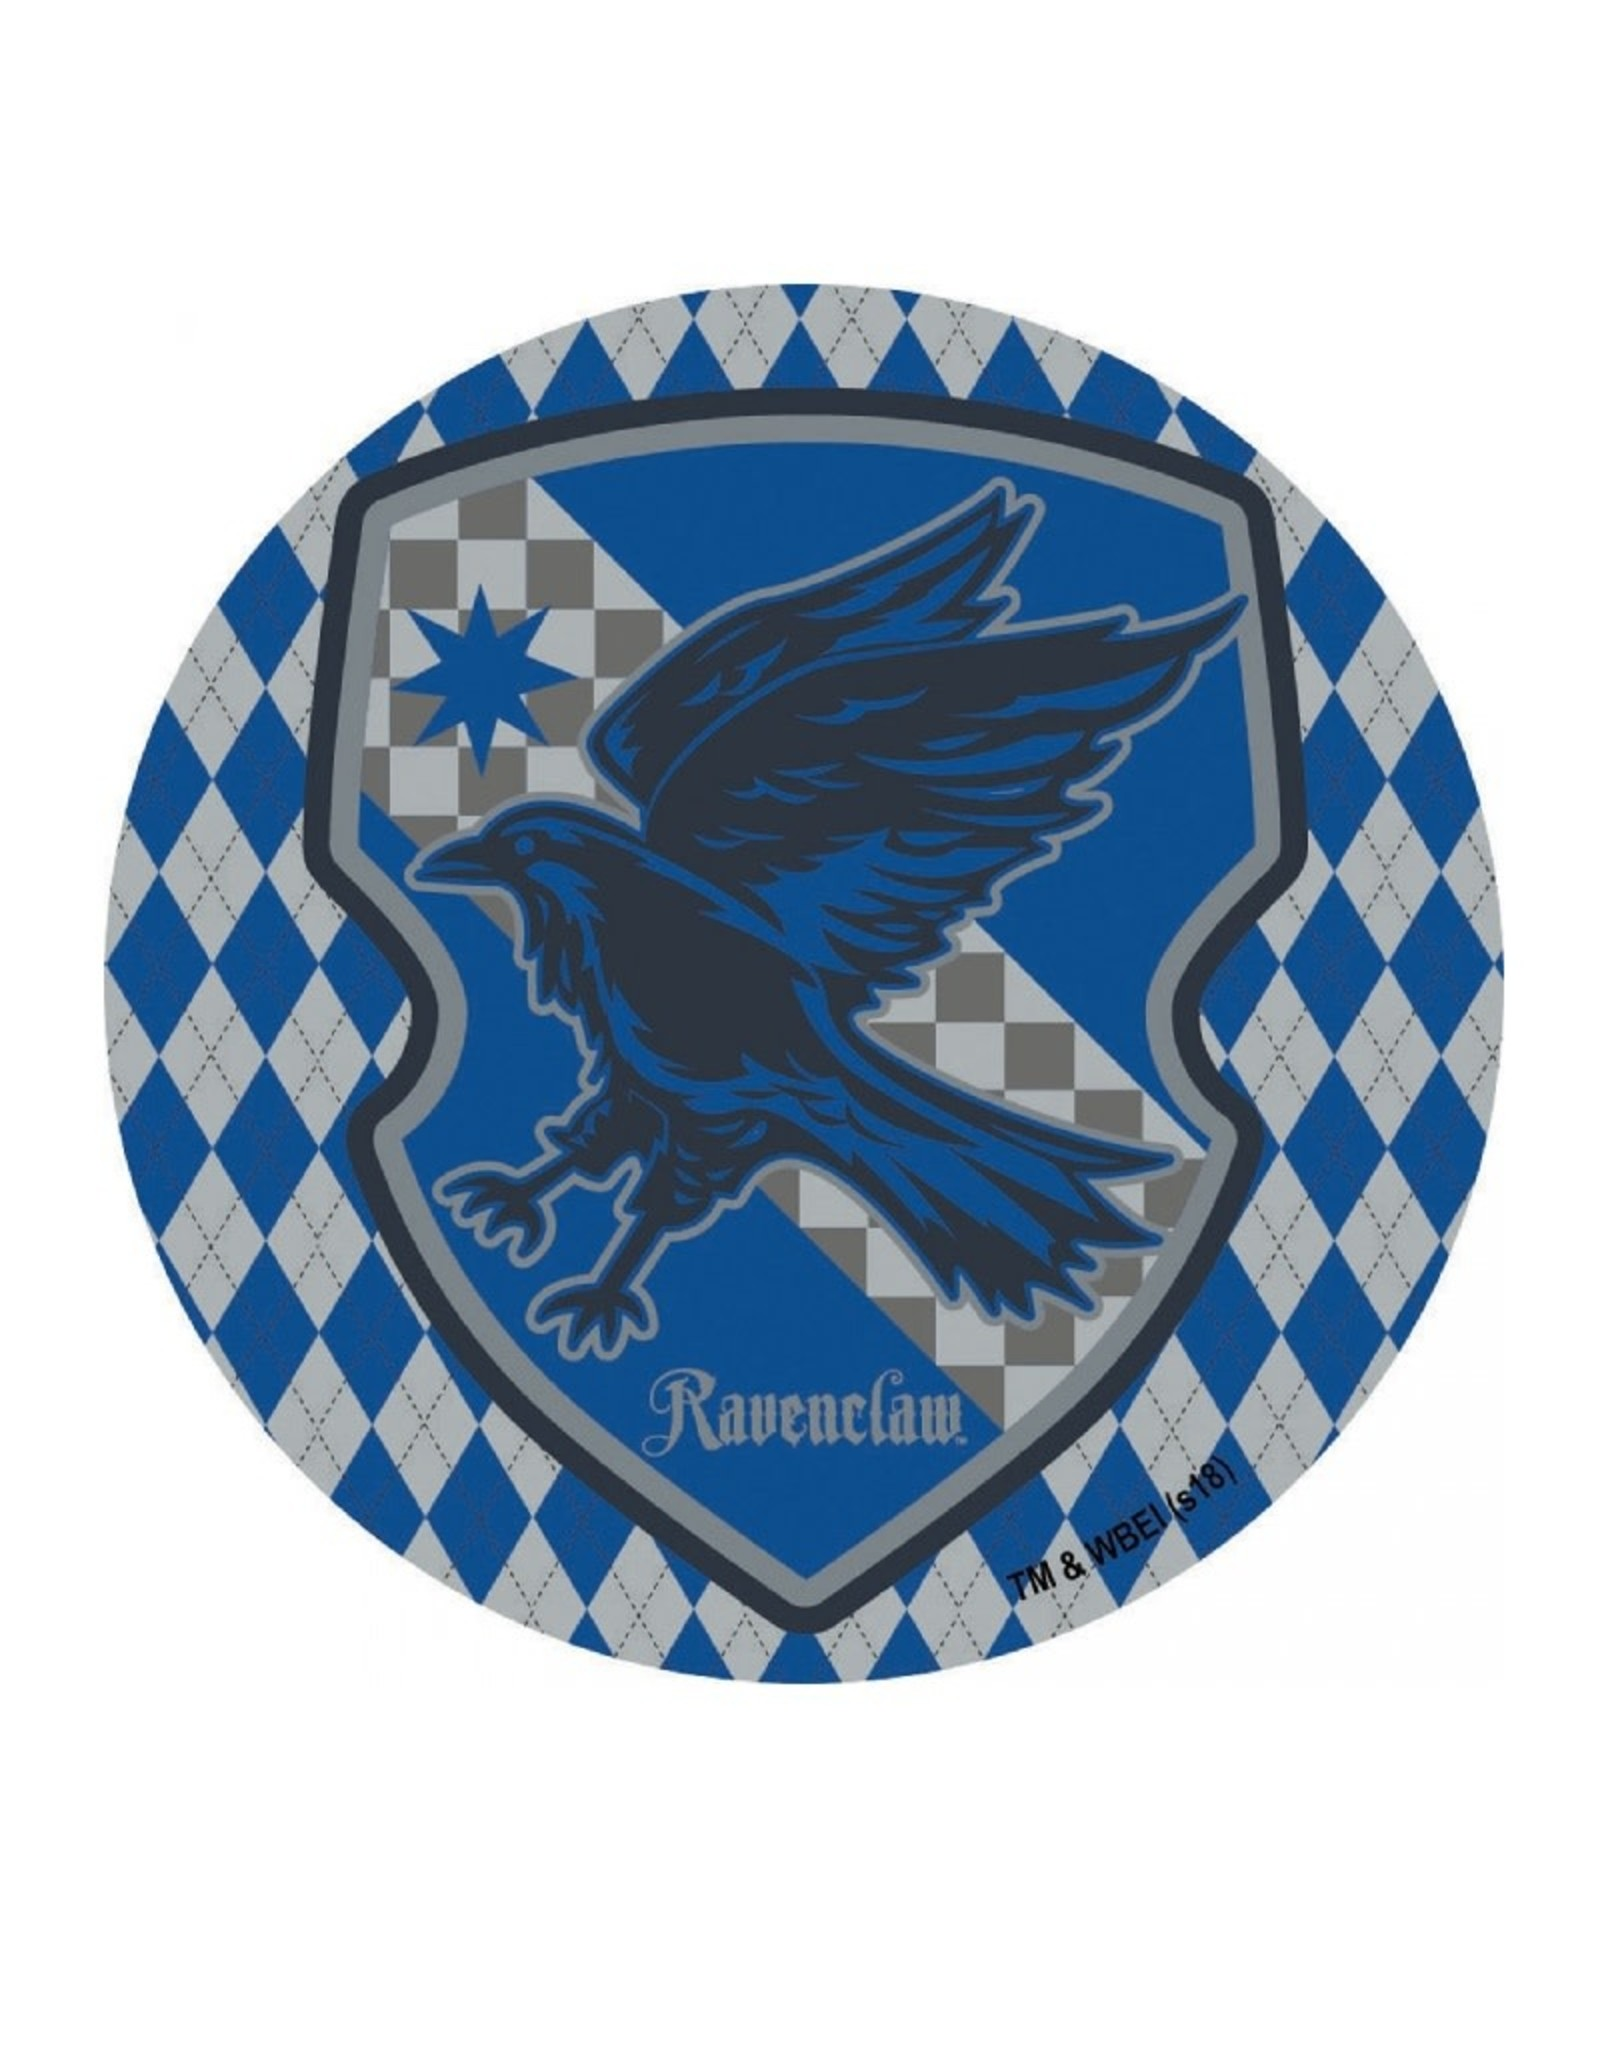 Ravenclaw - Adhesive Fabric Patch